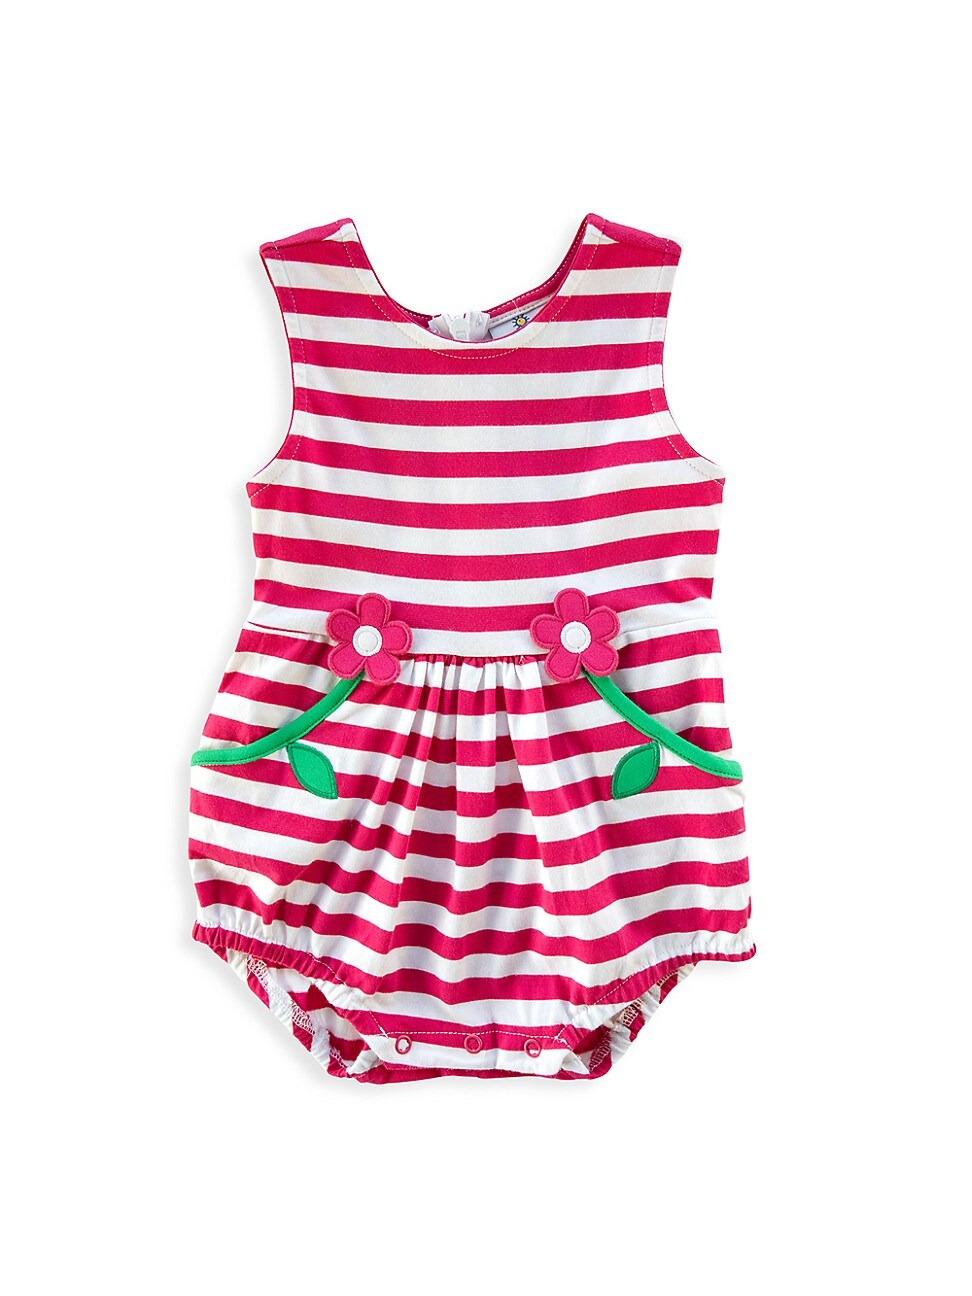 Florence Eiseman Dresses BABY GIRL'S FOR THE FUN OF IT STRIPED BUBBLE ROMPER